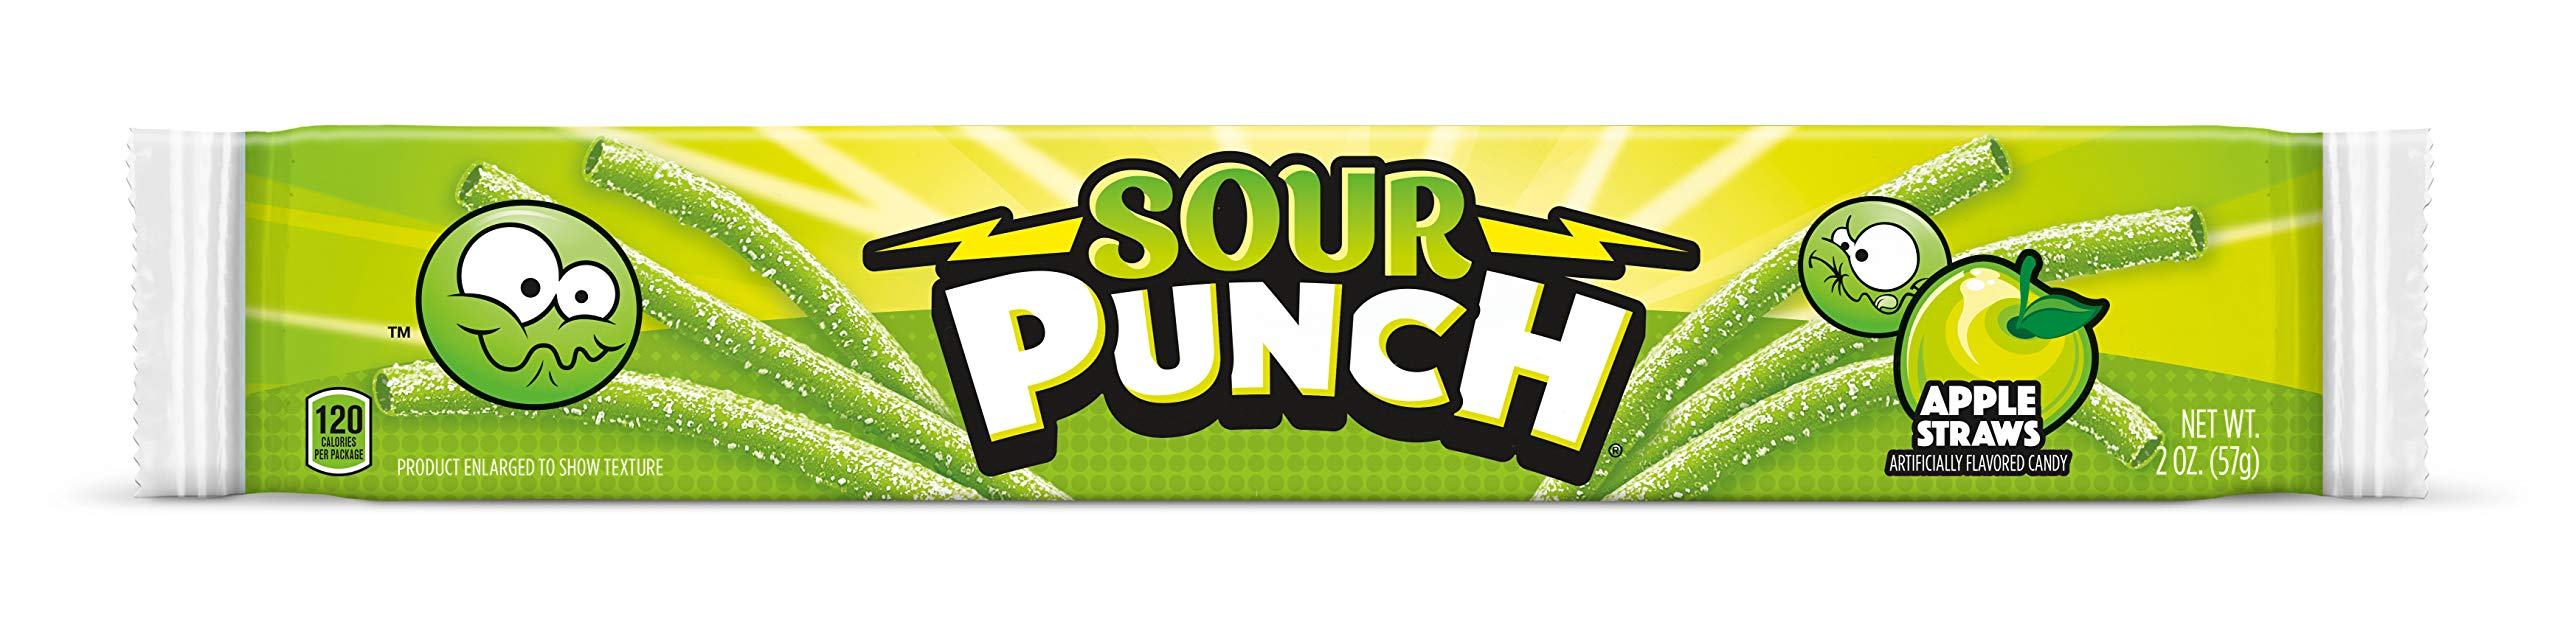 Sour Punch Straws, Sweet & Sour Apple Fruit Flavor, Soft Chewy Candy, 2oz Tray (24 Pack) by Sour Punch (Image #2)